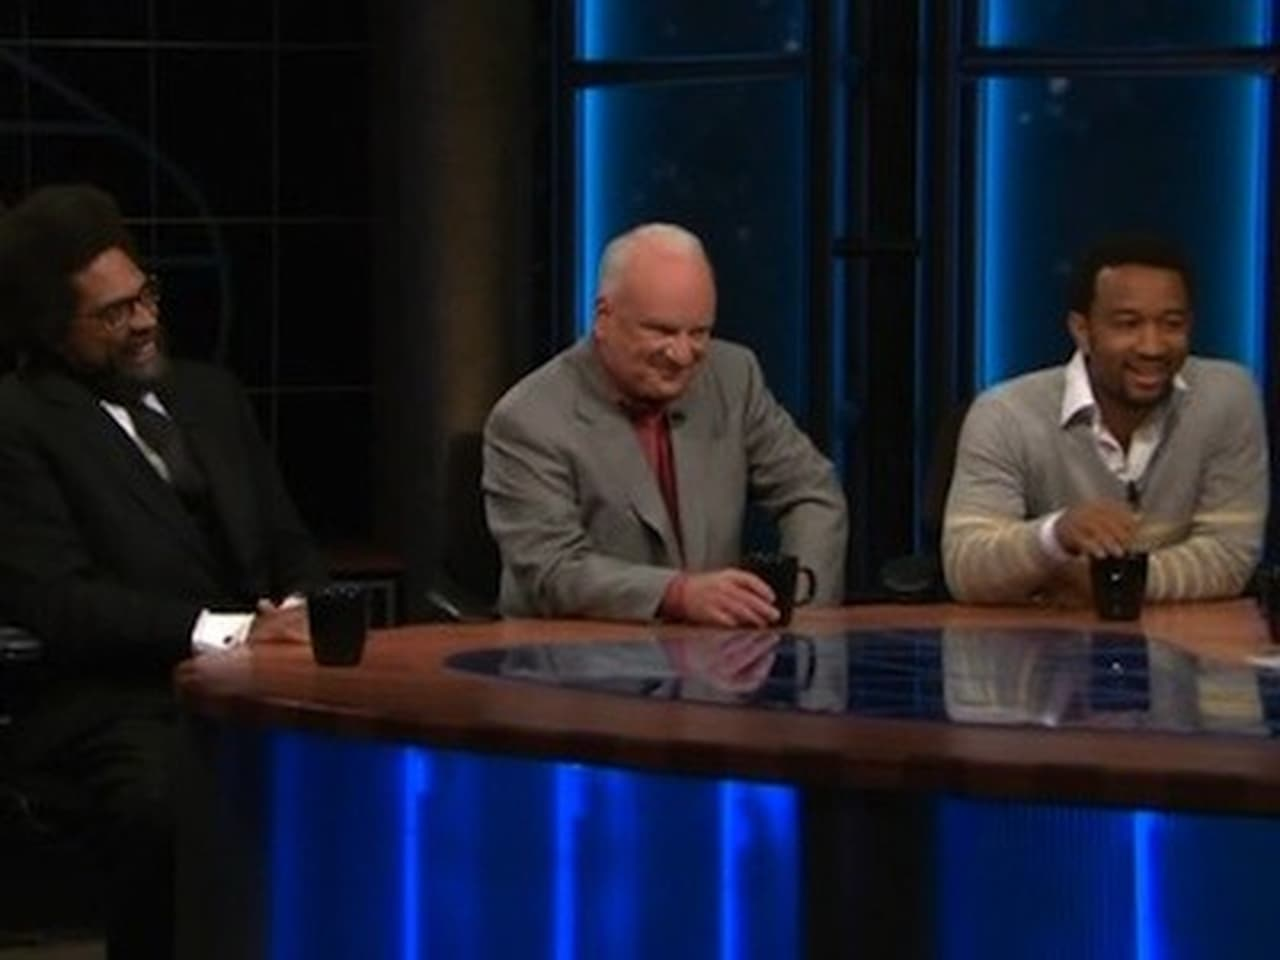 Real Time with Bill Maher - Season 4 Episode 12 : May 12, 2006